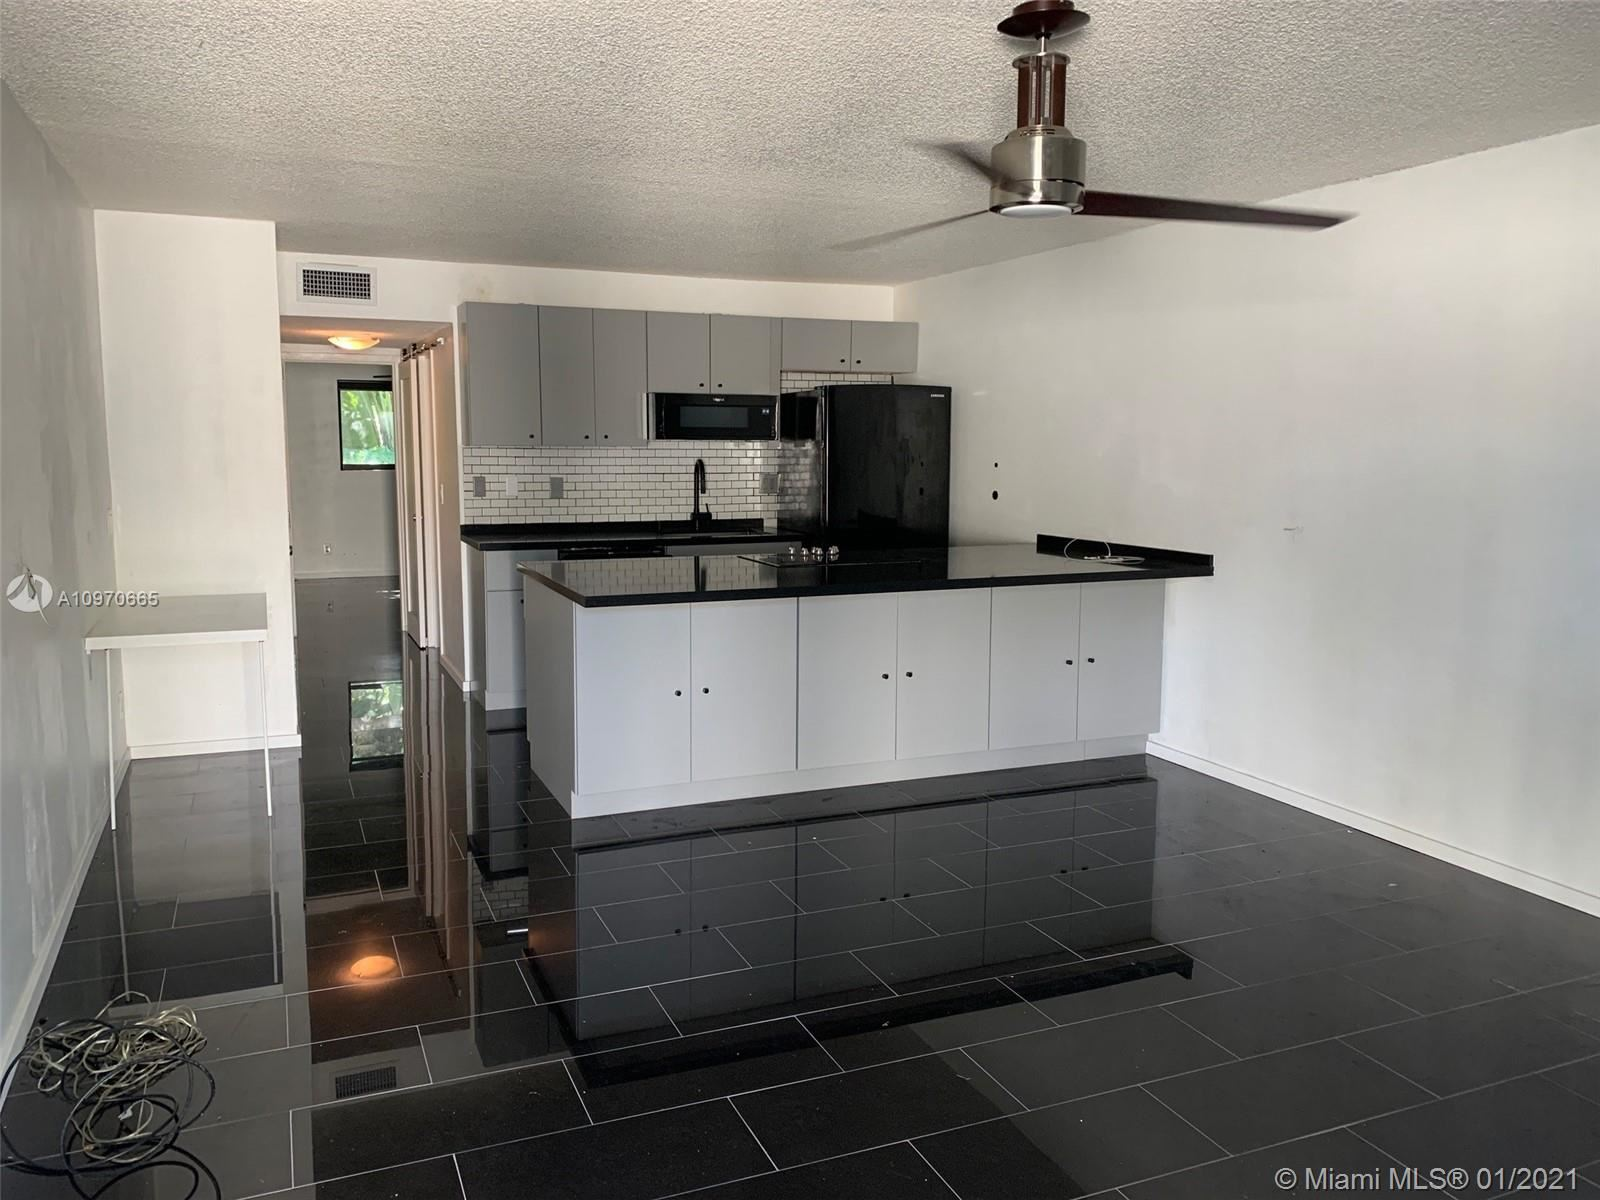 1901 N Andrews Ave #208, Wilton Manors, FL 33311 - #: A10970665